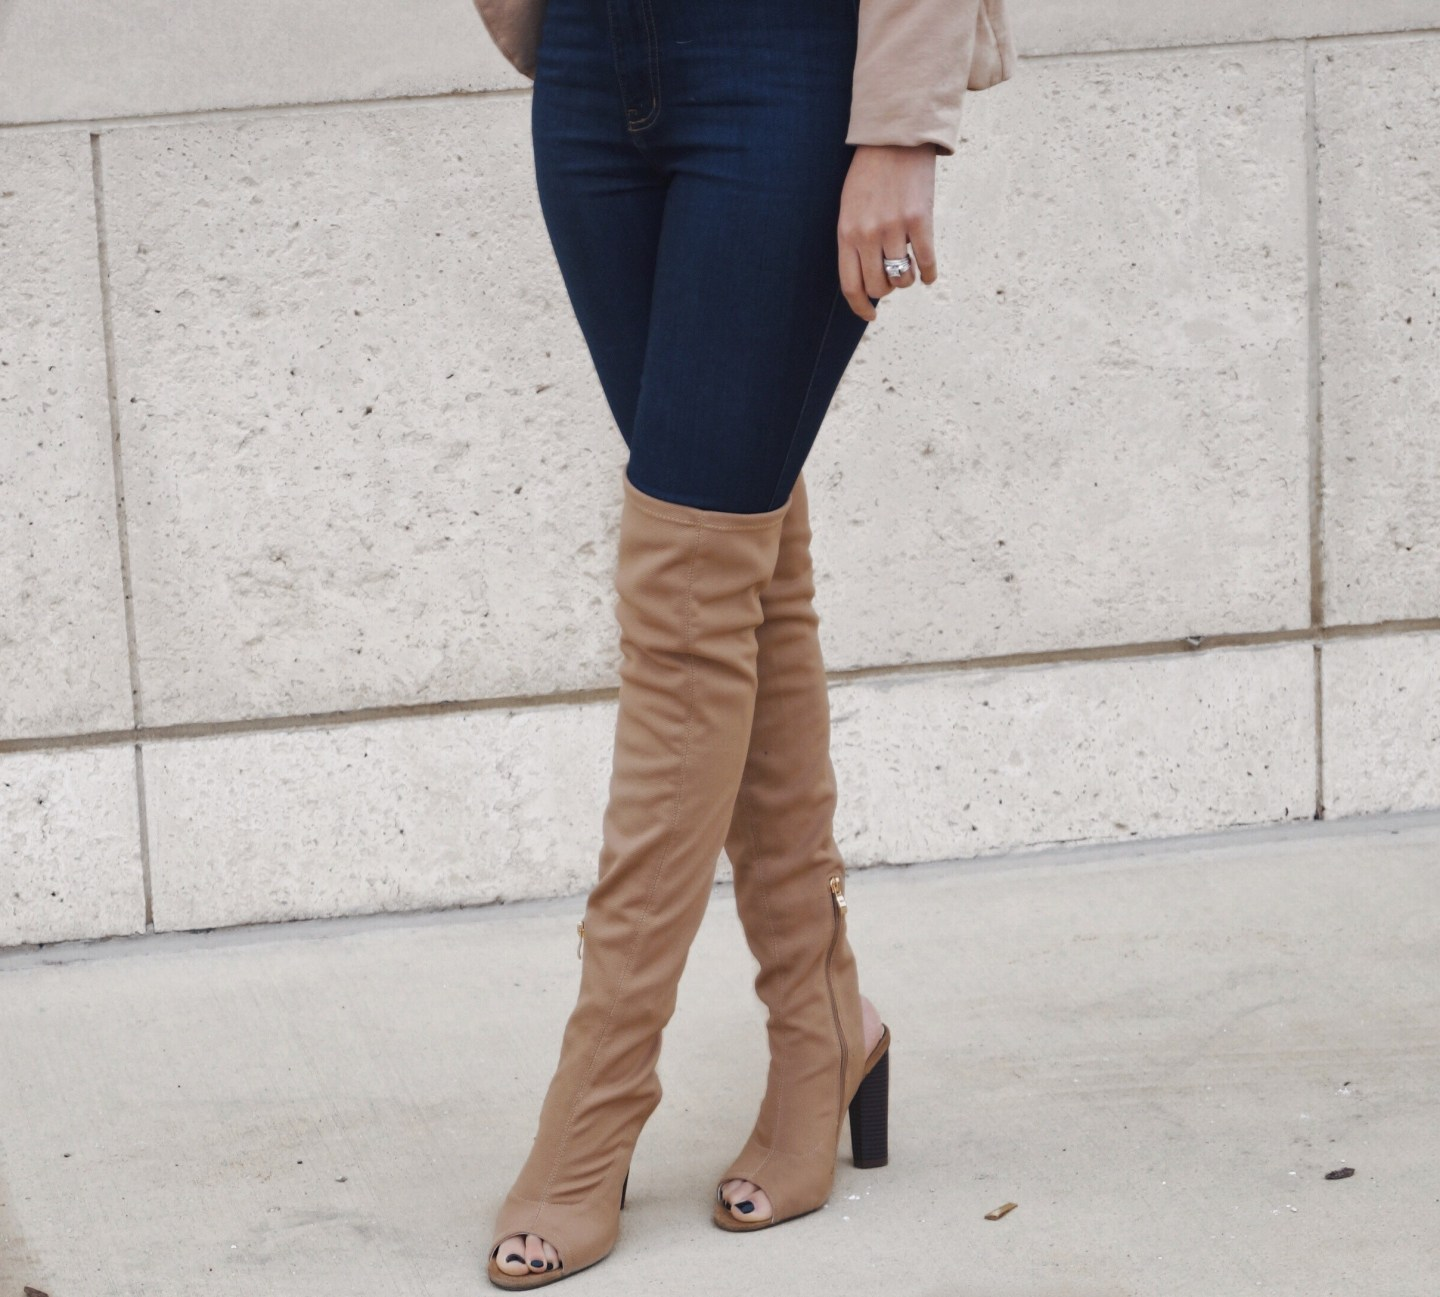 Thigh High Boots and Blazer Crop Top Fashion and Style Blog OOTD fashionnikki.com